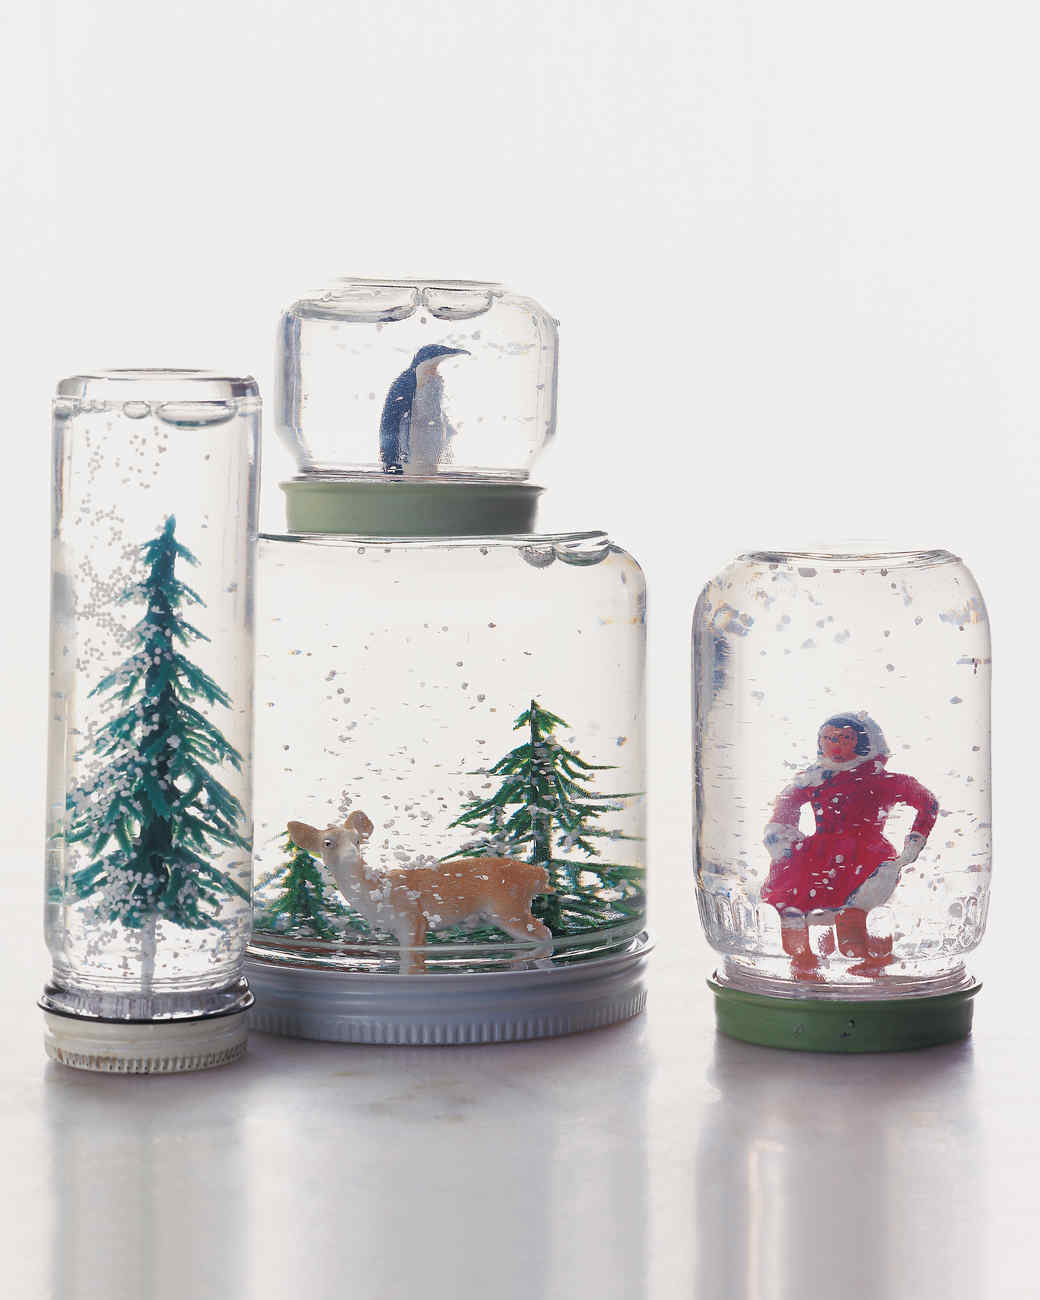 Delightful Create A Winter Wonderland In A Jar Design Inspirations